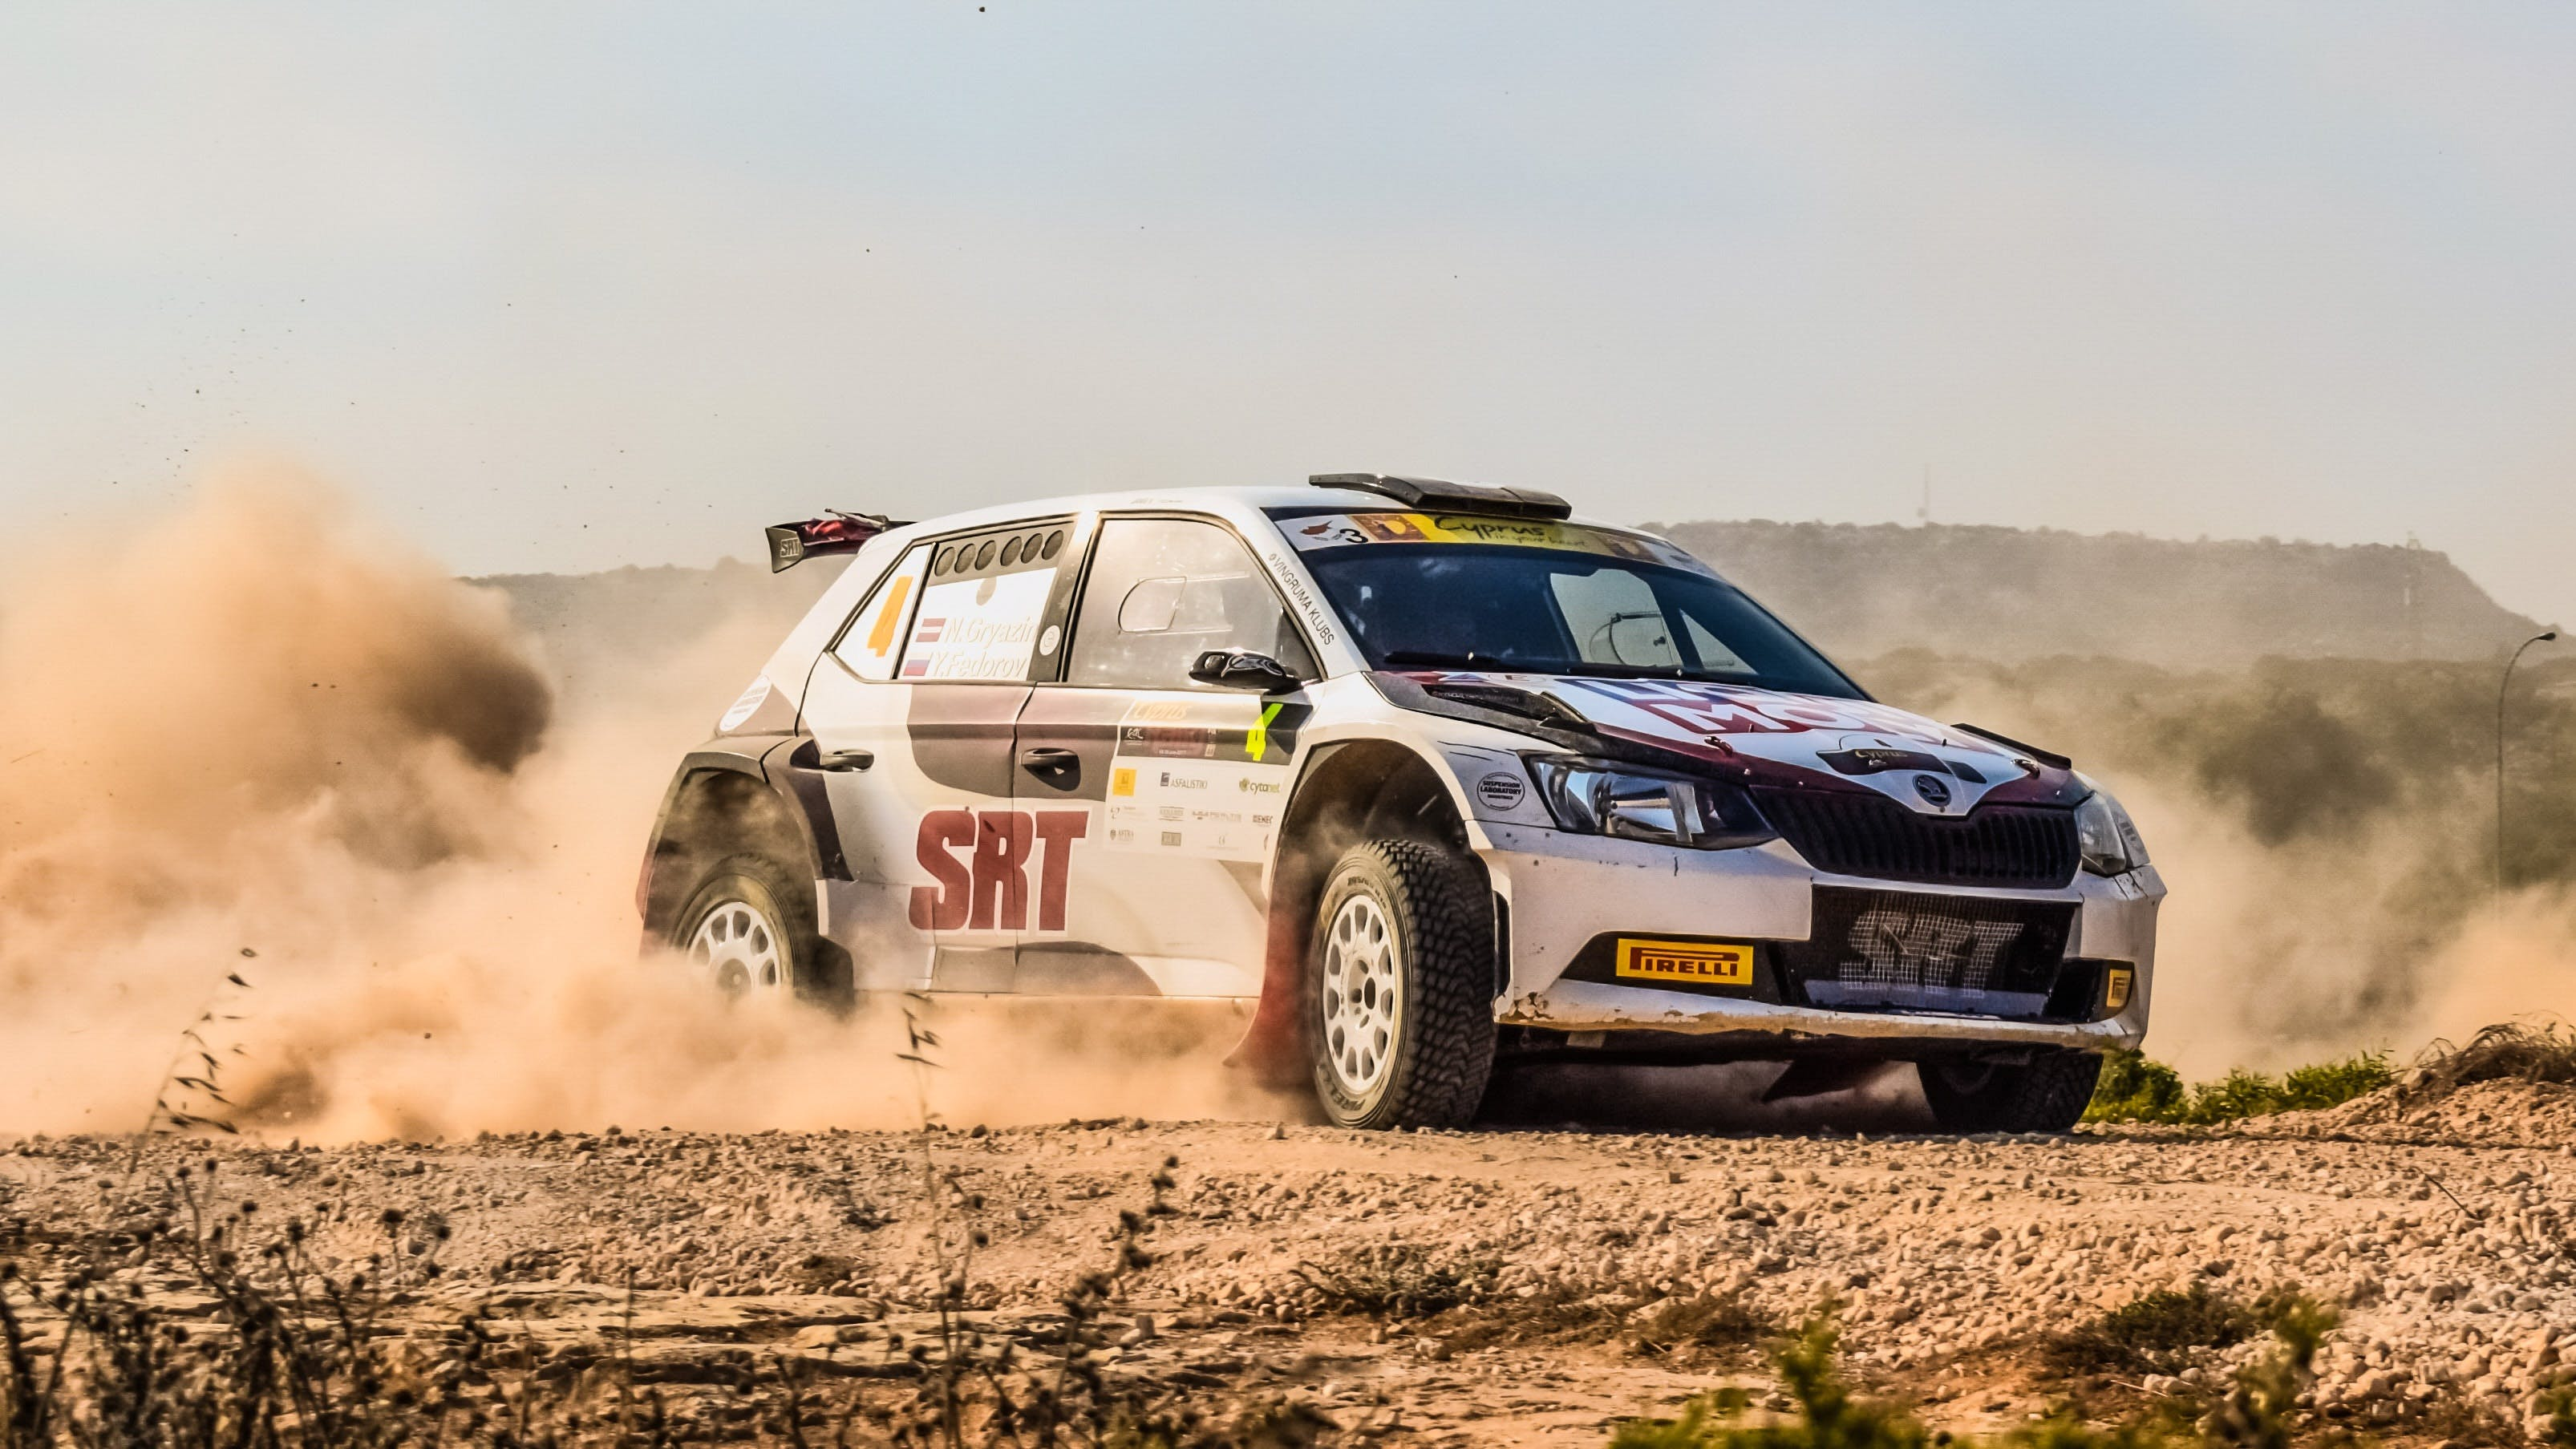 Free stock photo of action, car, competition, cyprus